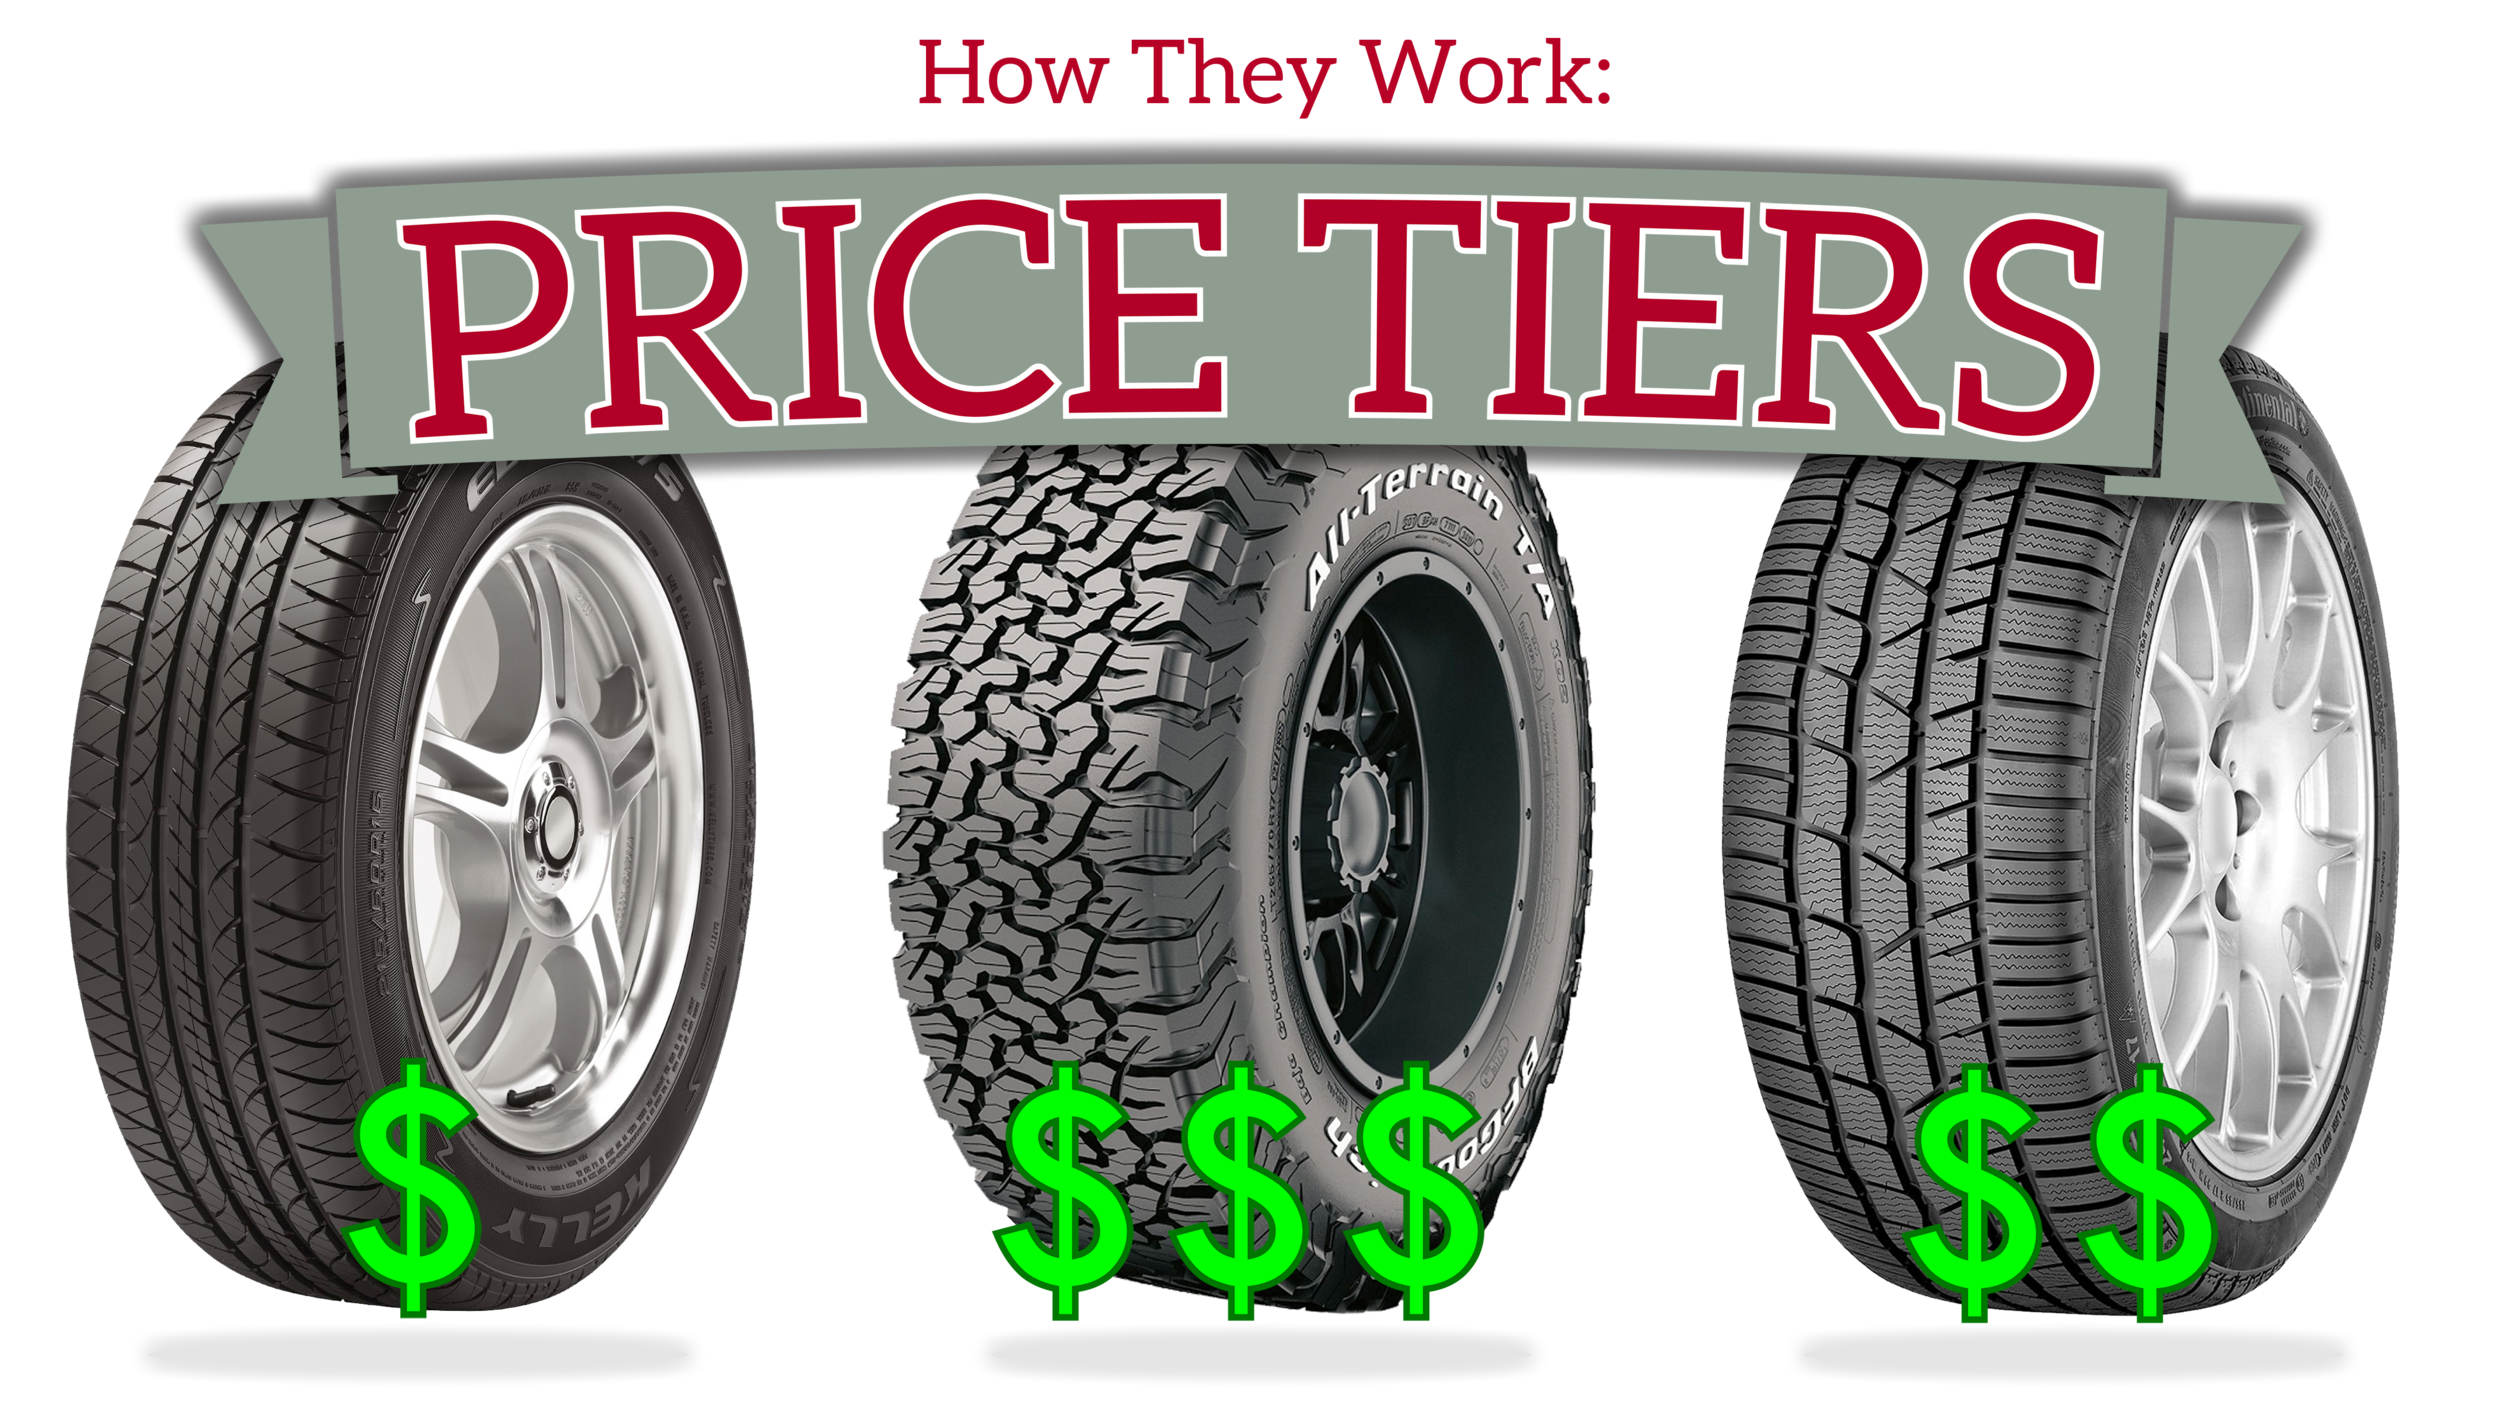 Understanding the Tire Sniffer's Price Tiers